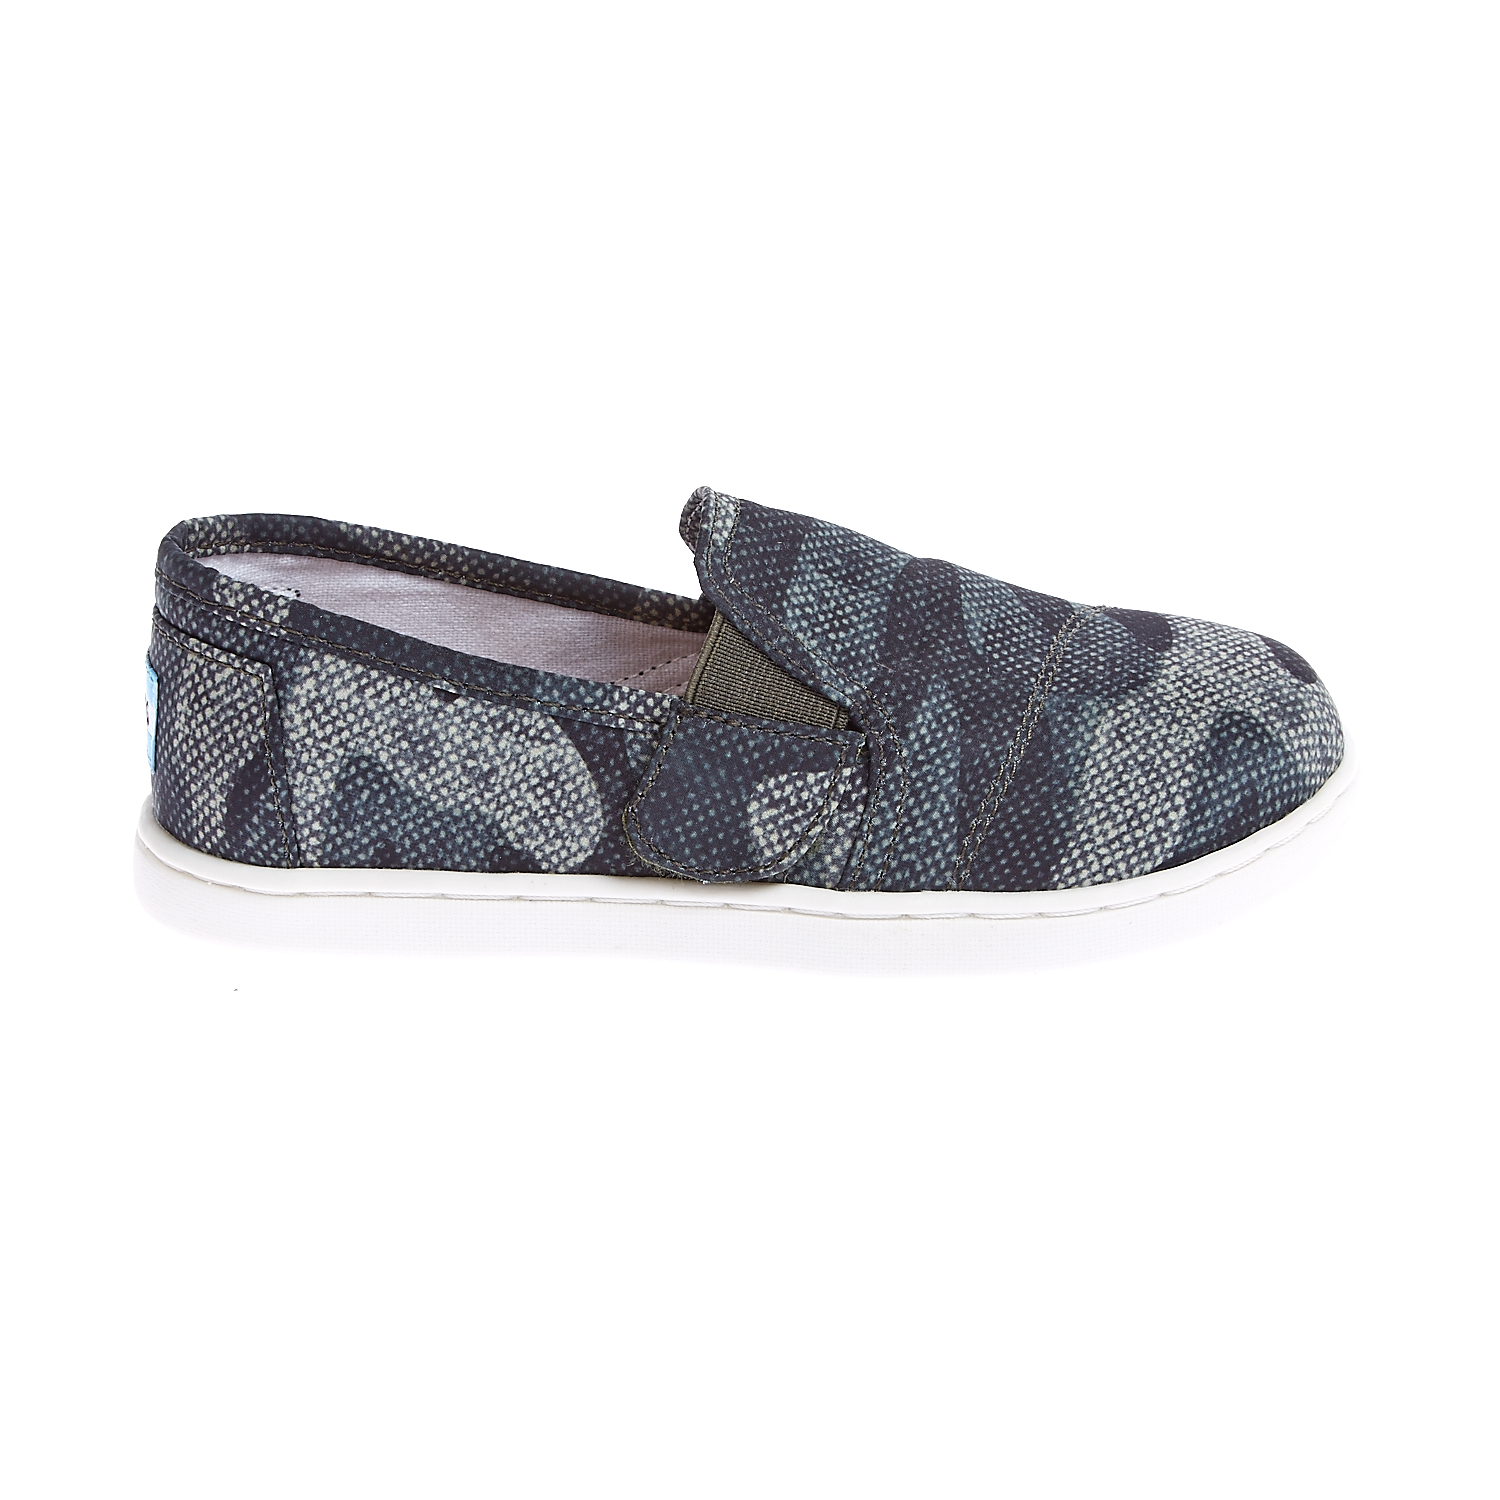 TOMS – Βρεφικά παπούτσια TOMS χακί